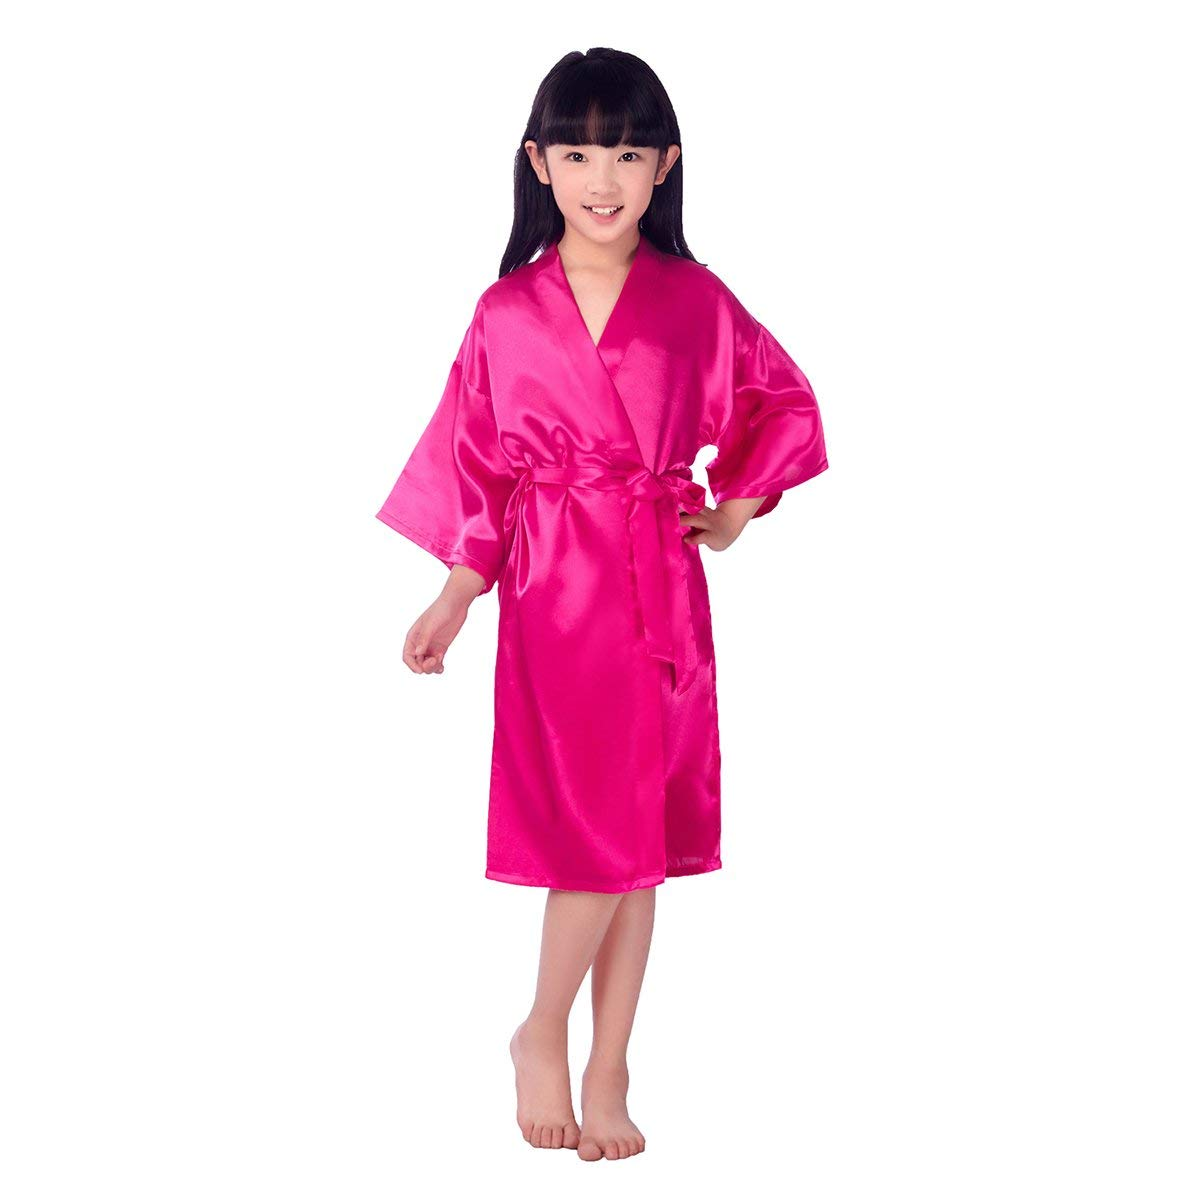 0ecd2d0940 Get Quotations · LUOEM Kids Satin Robe Kimono Robe Spa Stain Bathrobe  Nightgown for Party Birthday Size 8 (